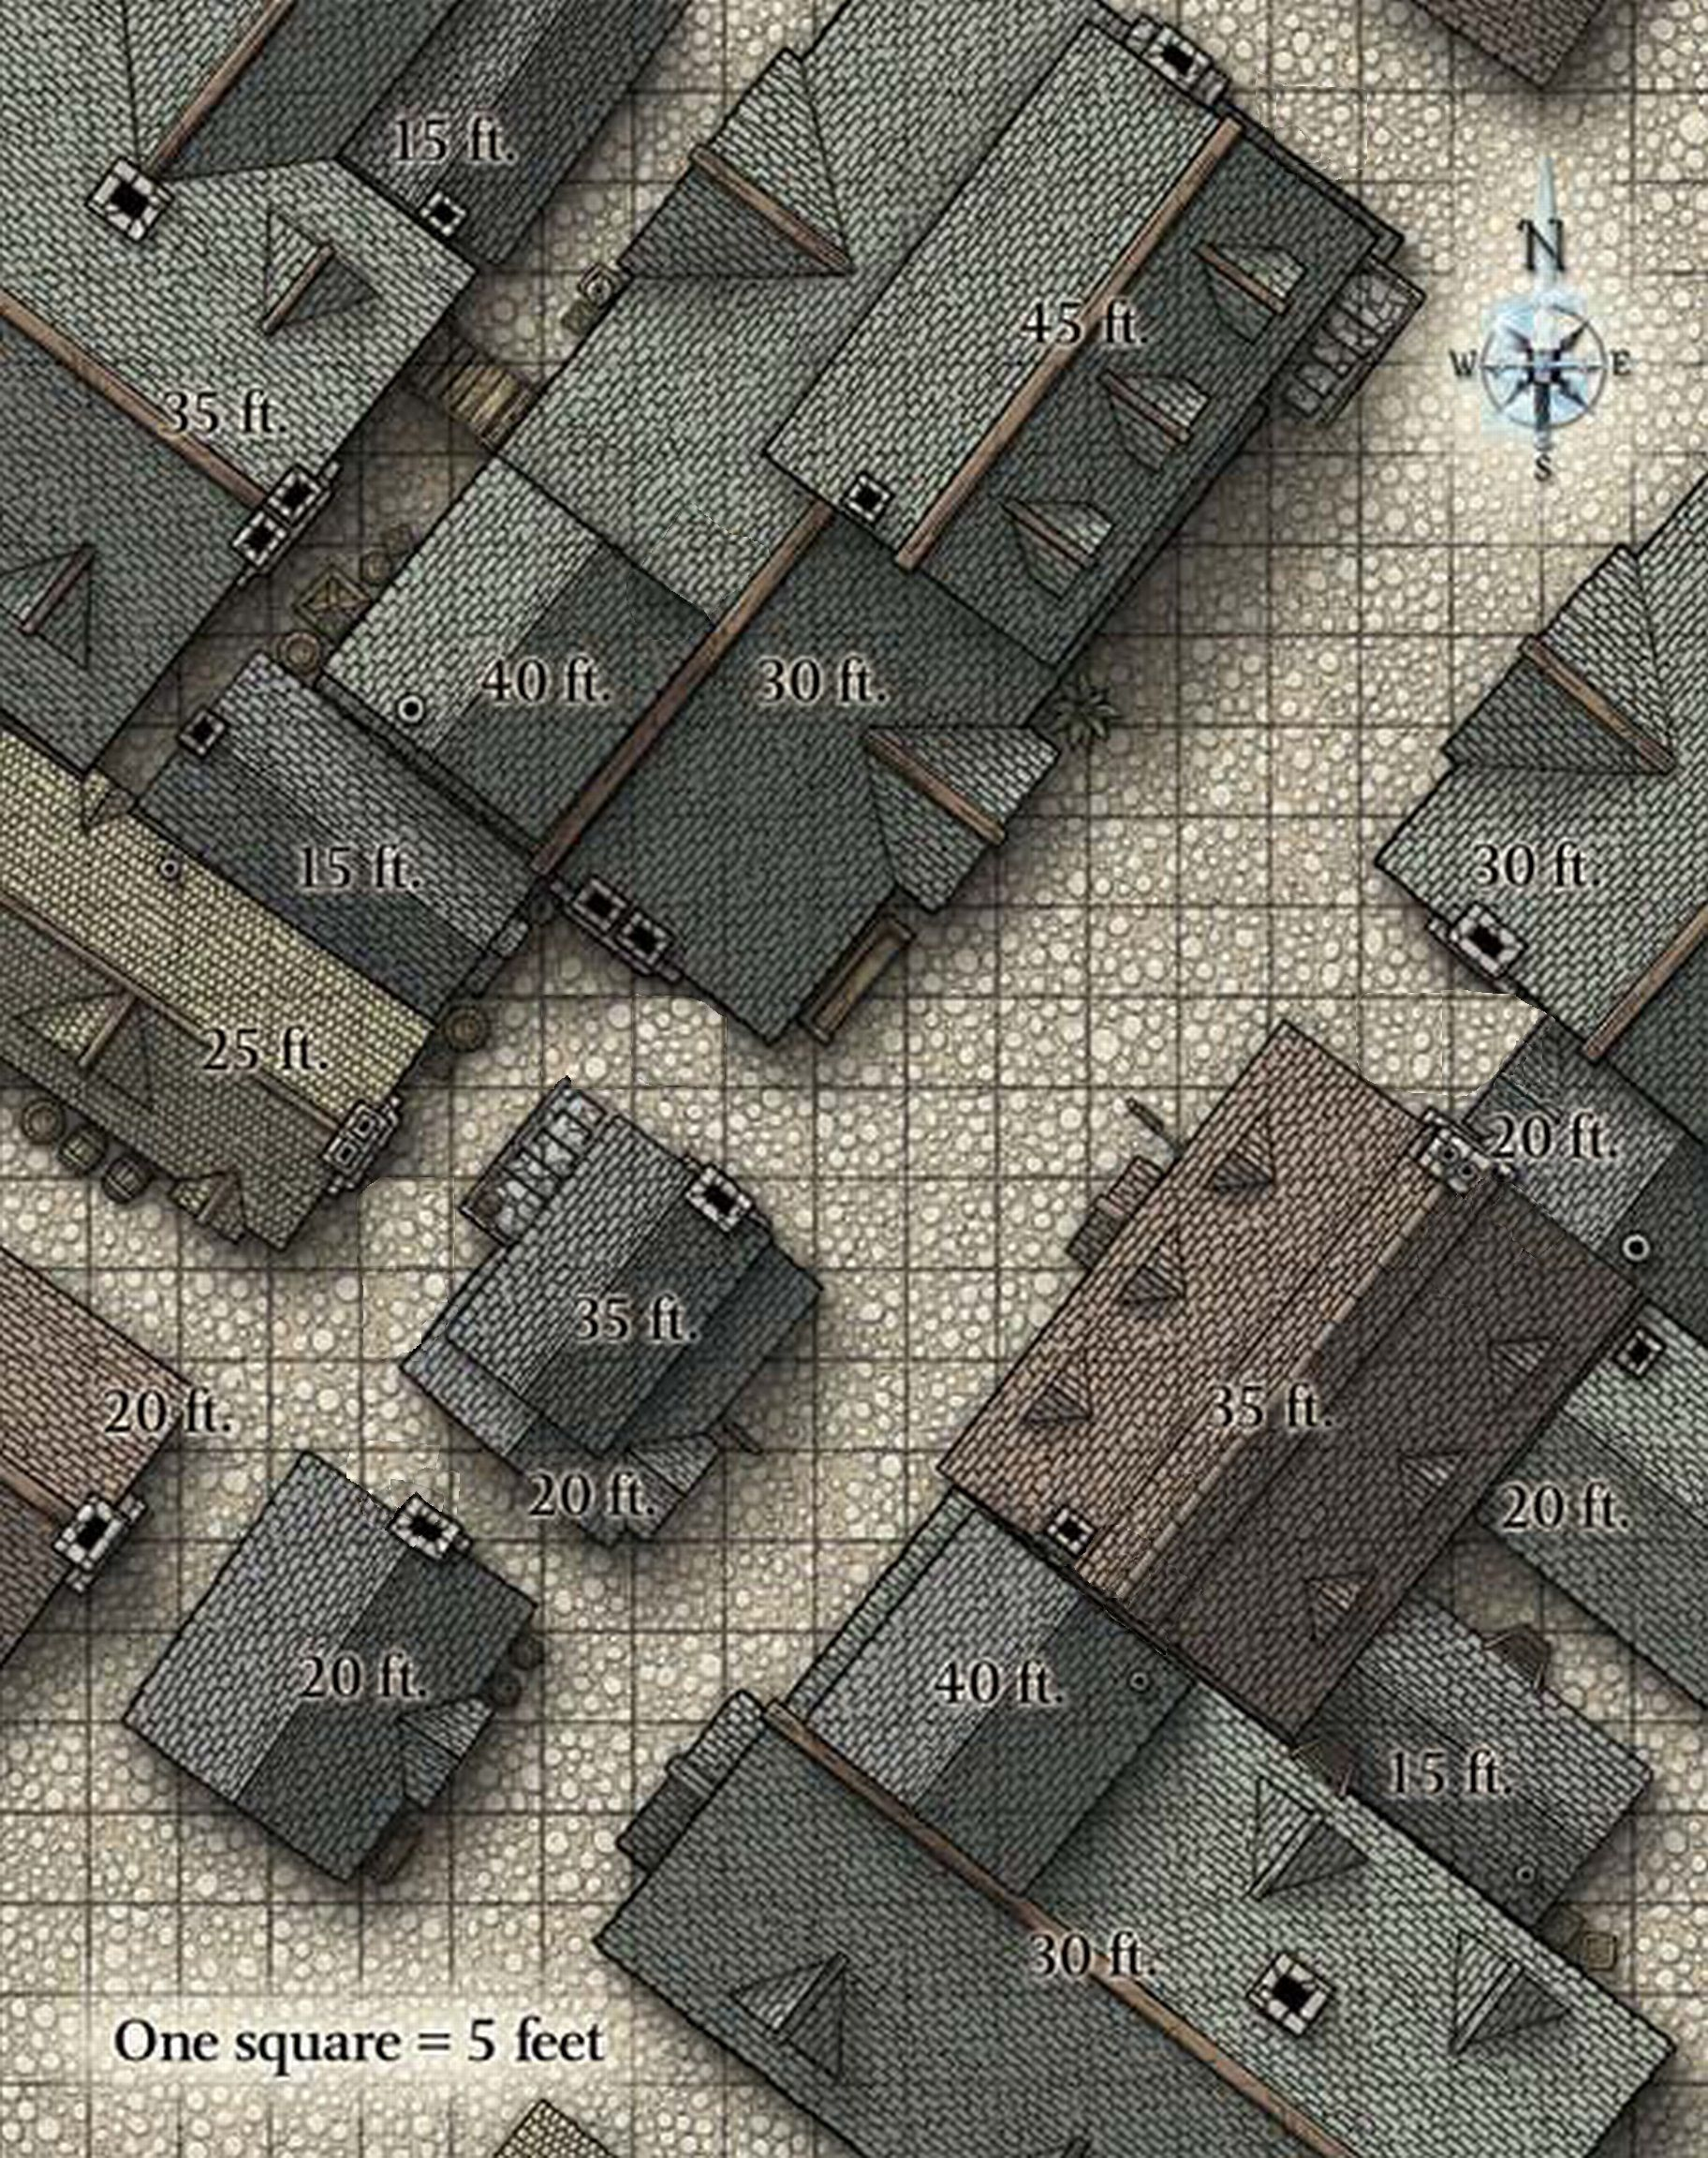 Dnd Street Map : street, Scales, Temple, Between, Fantasy, Dungeon, Maps,